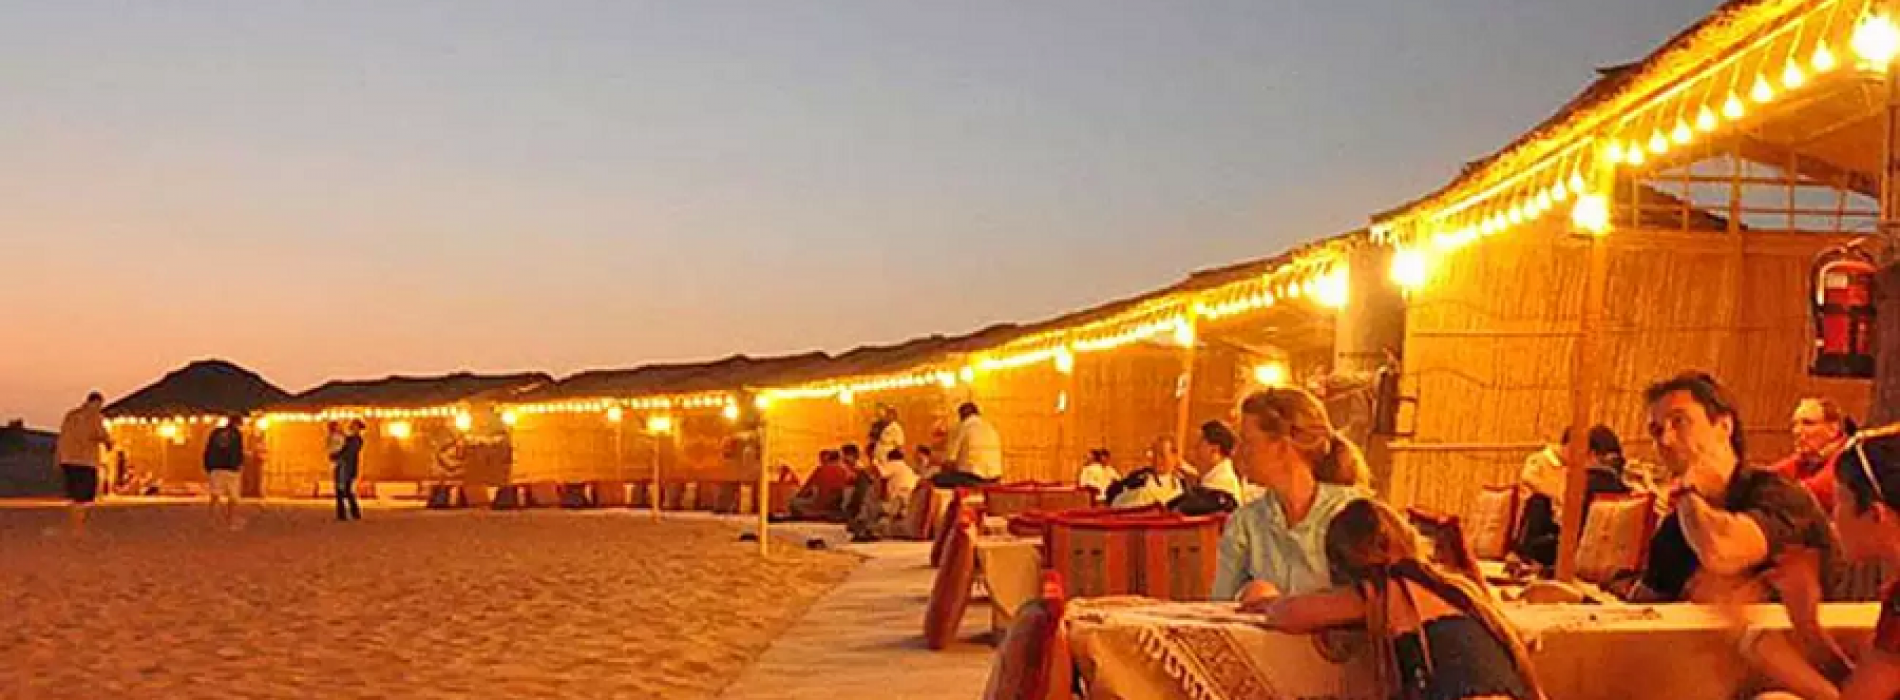 Enjoy a Pleasant Evening in Dubai- Desert Safari